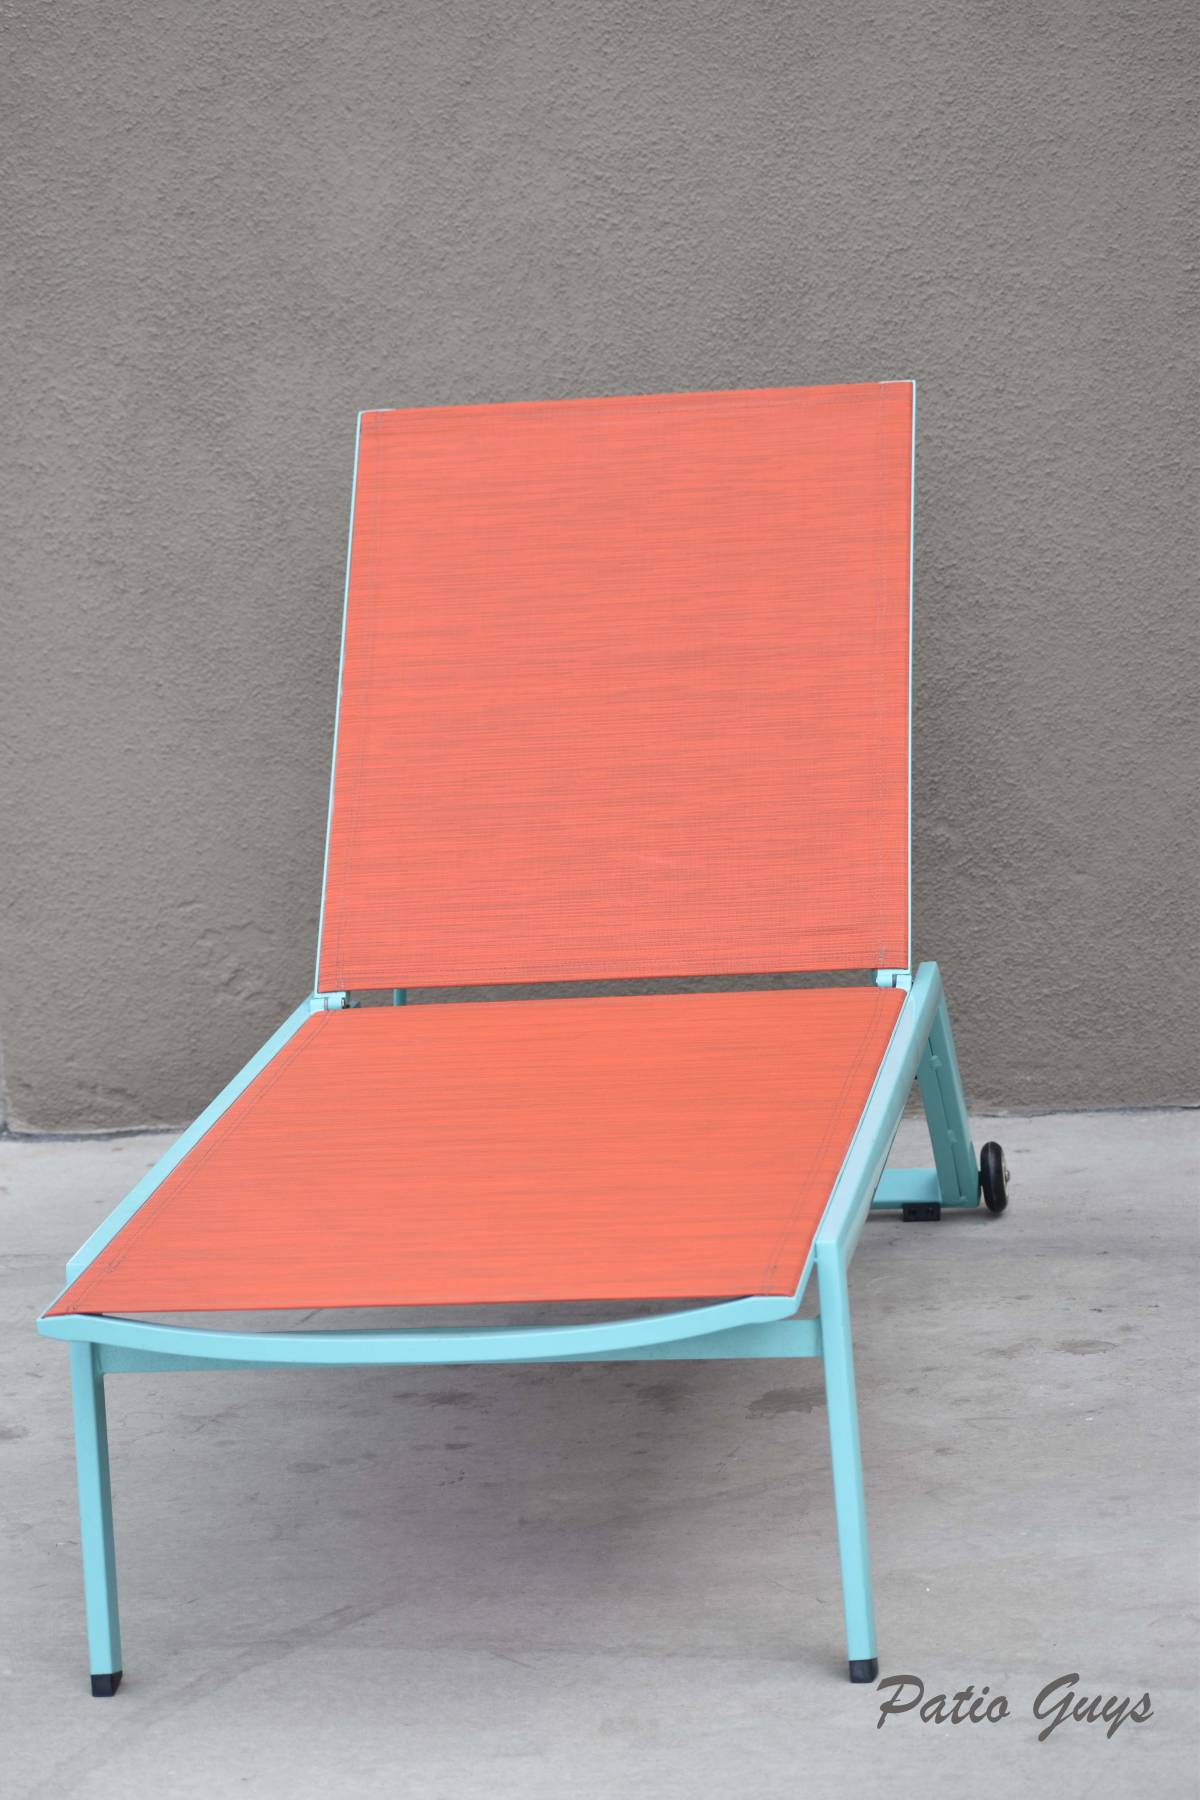 light blue chaise frame with orange sling